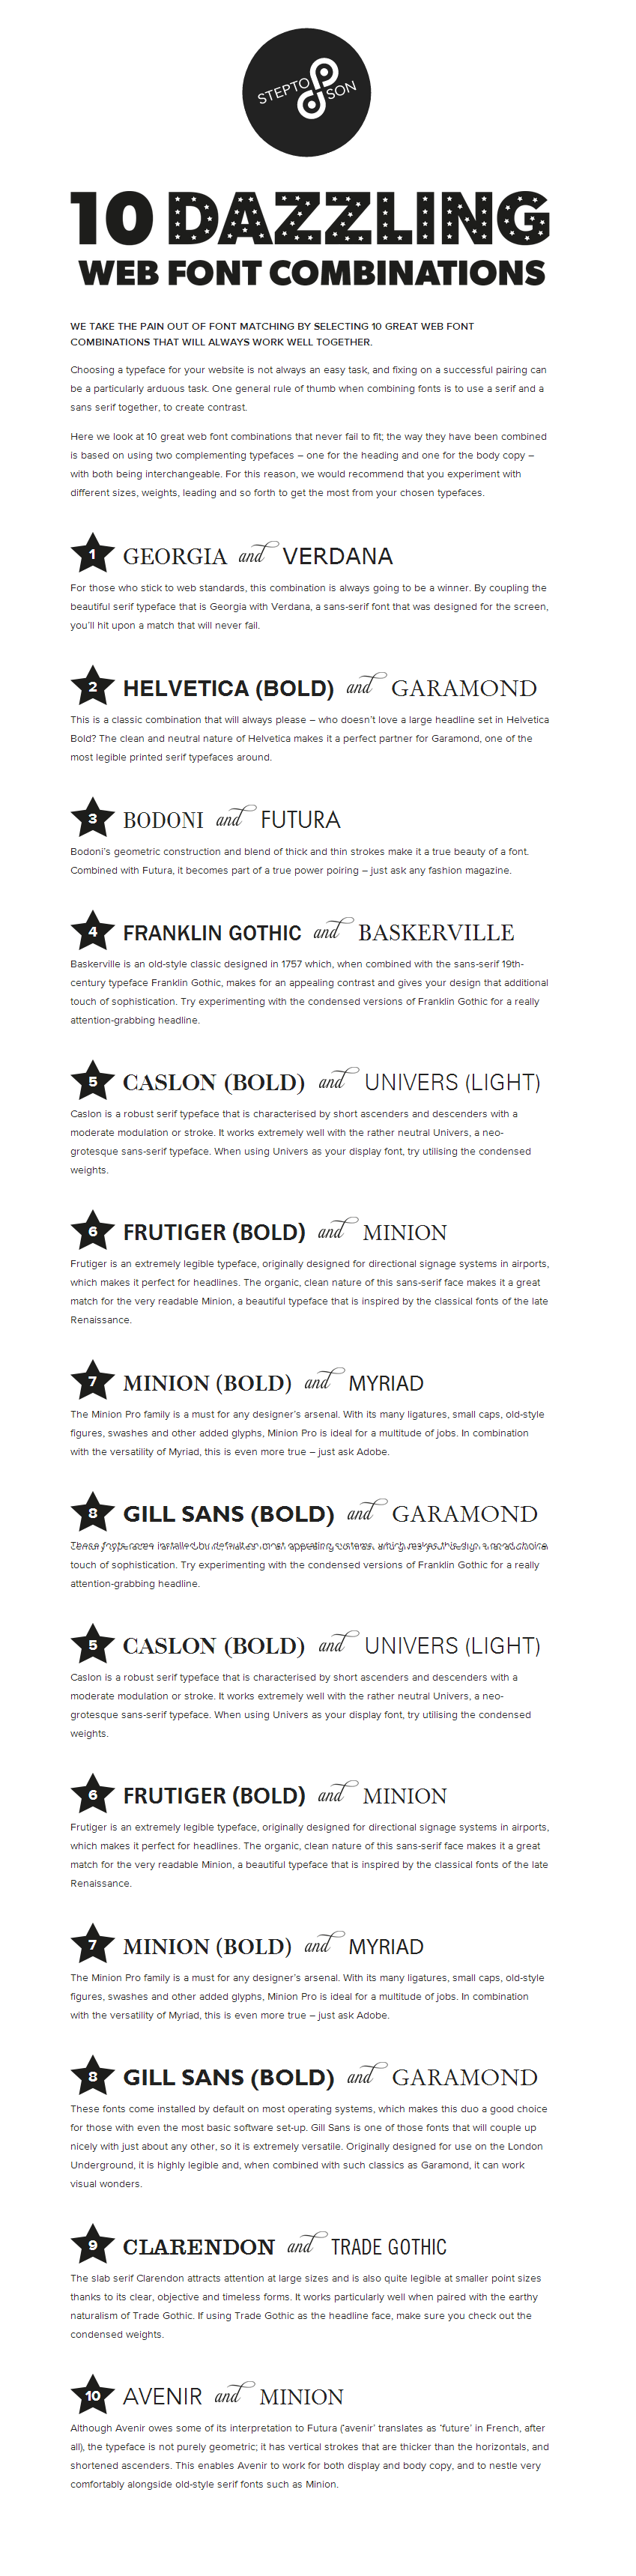 Resume Unprofessional Resume font used in resume 10 fonts that can never let your look great web combinations my fave is the number 1 combo